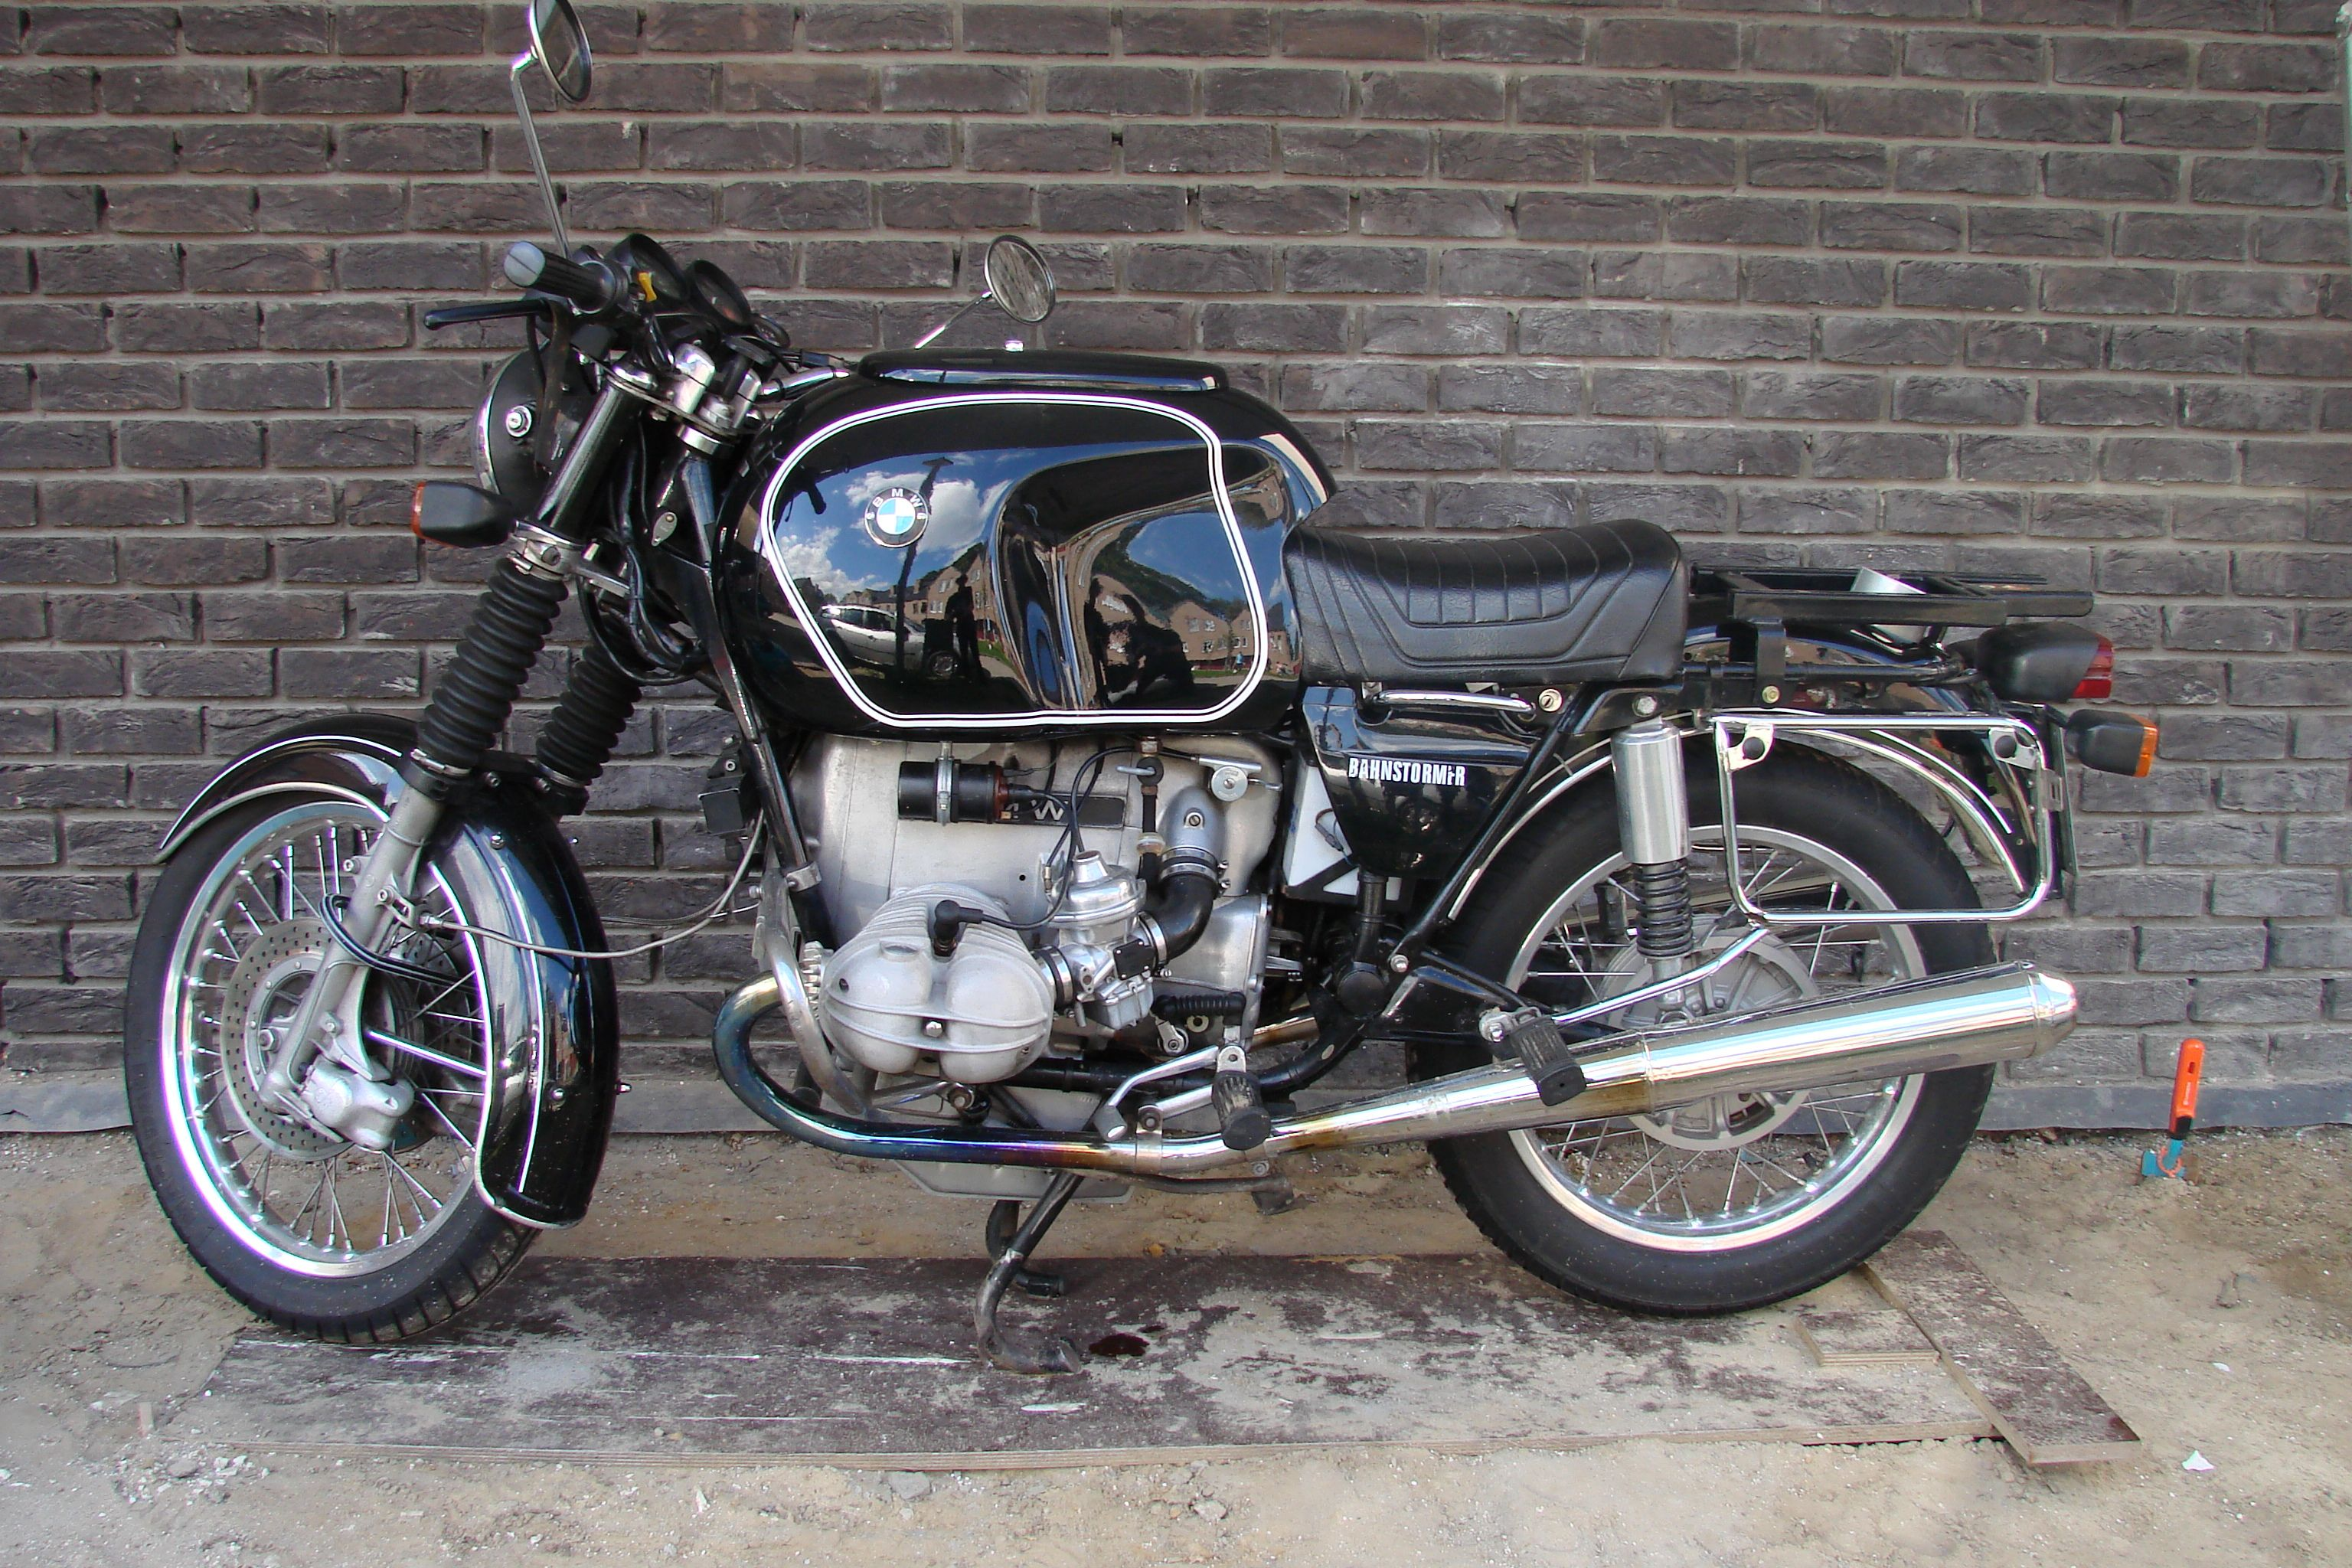 bmw r100 7 heinrich tank and mono seat motorcycles. Black Bedroom Furniture Sets. Home Design Ideas